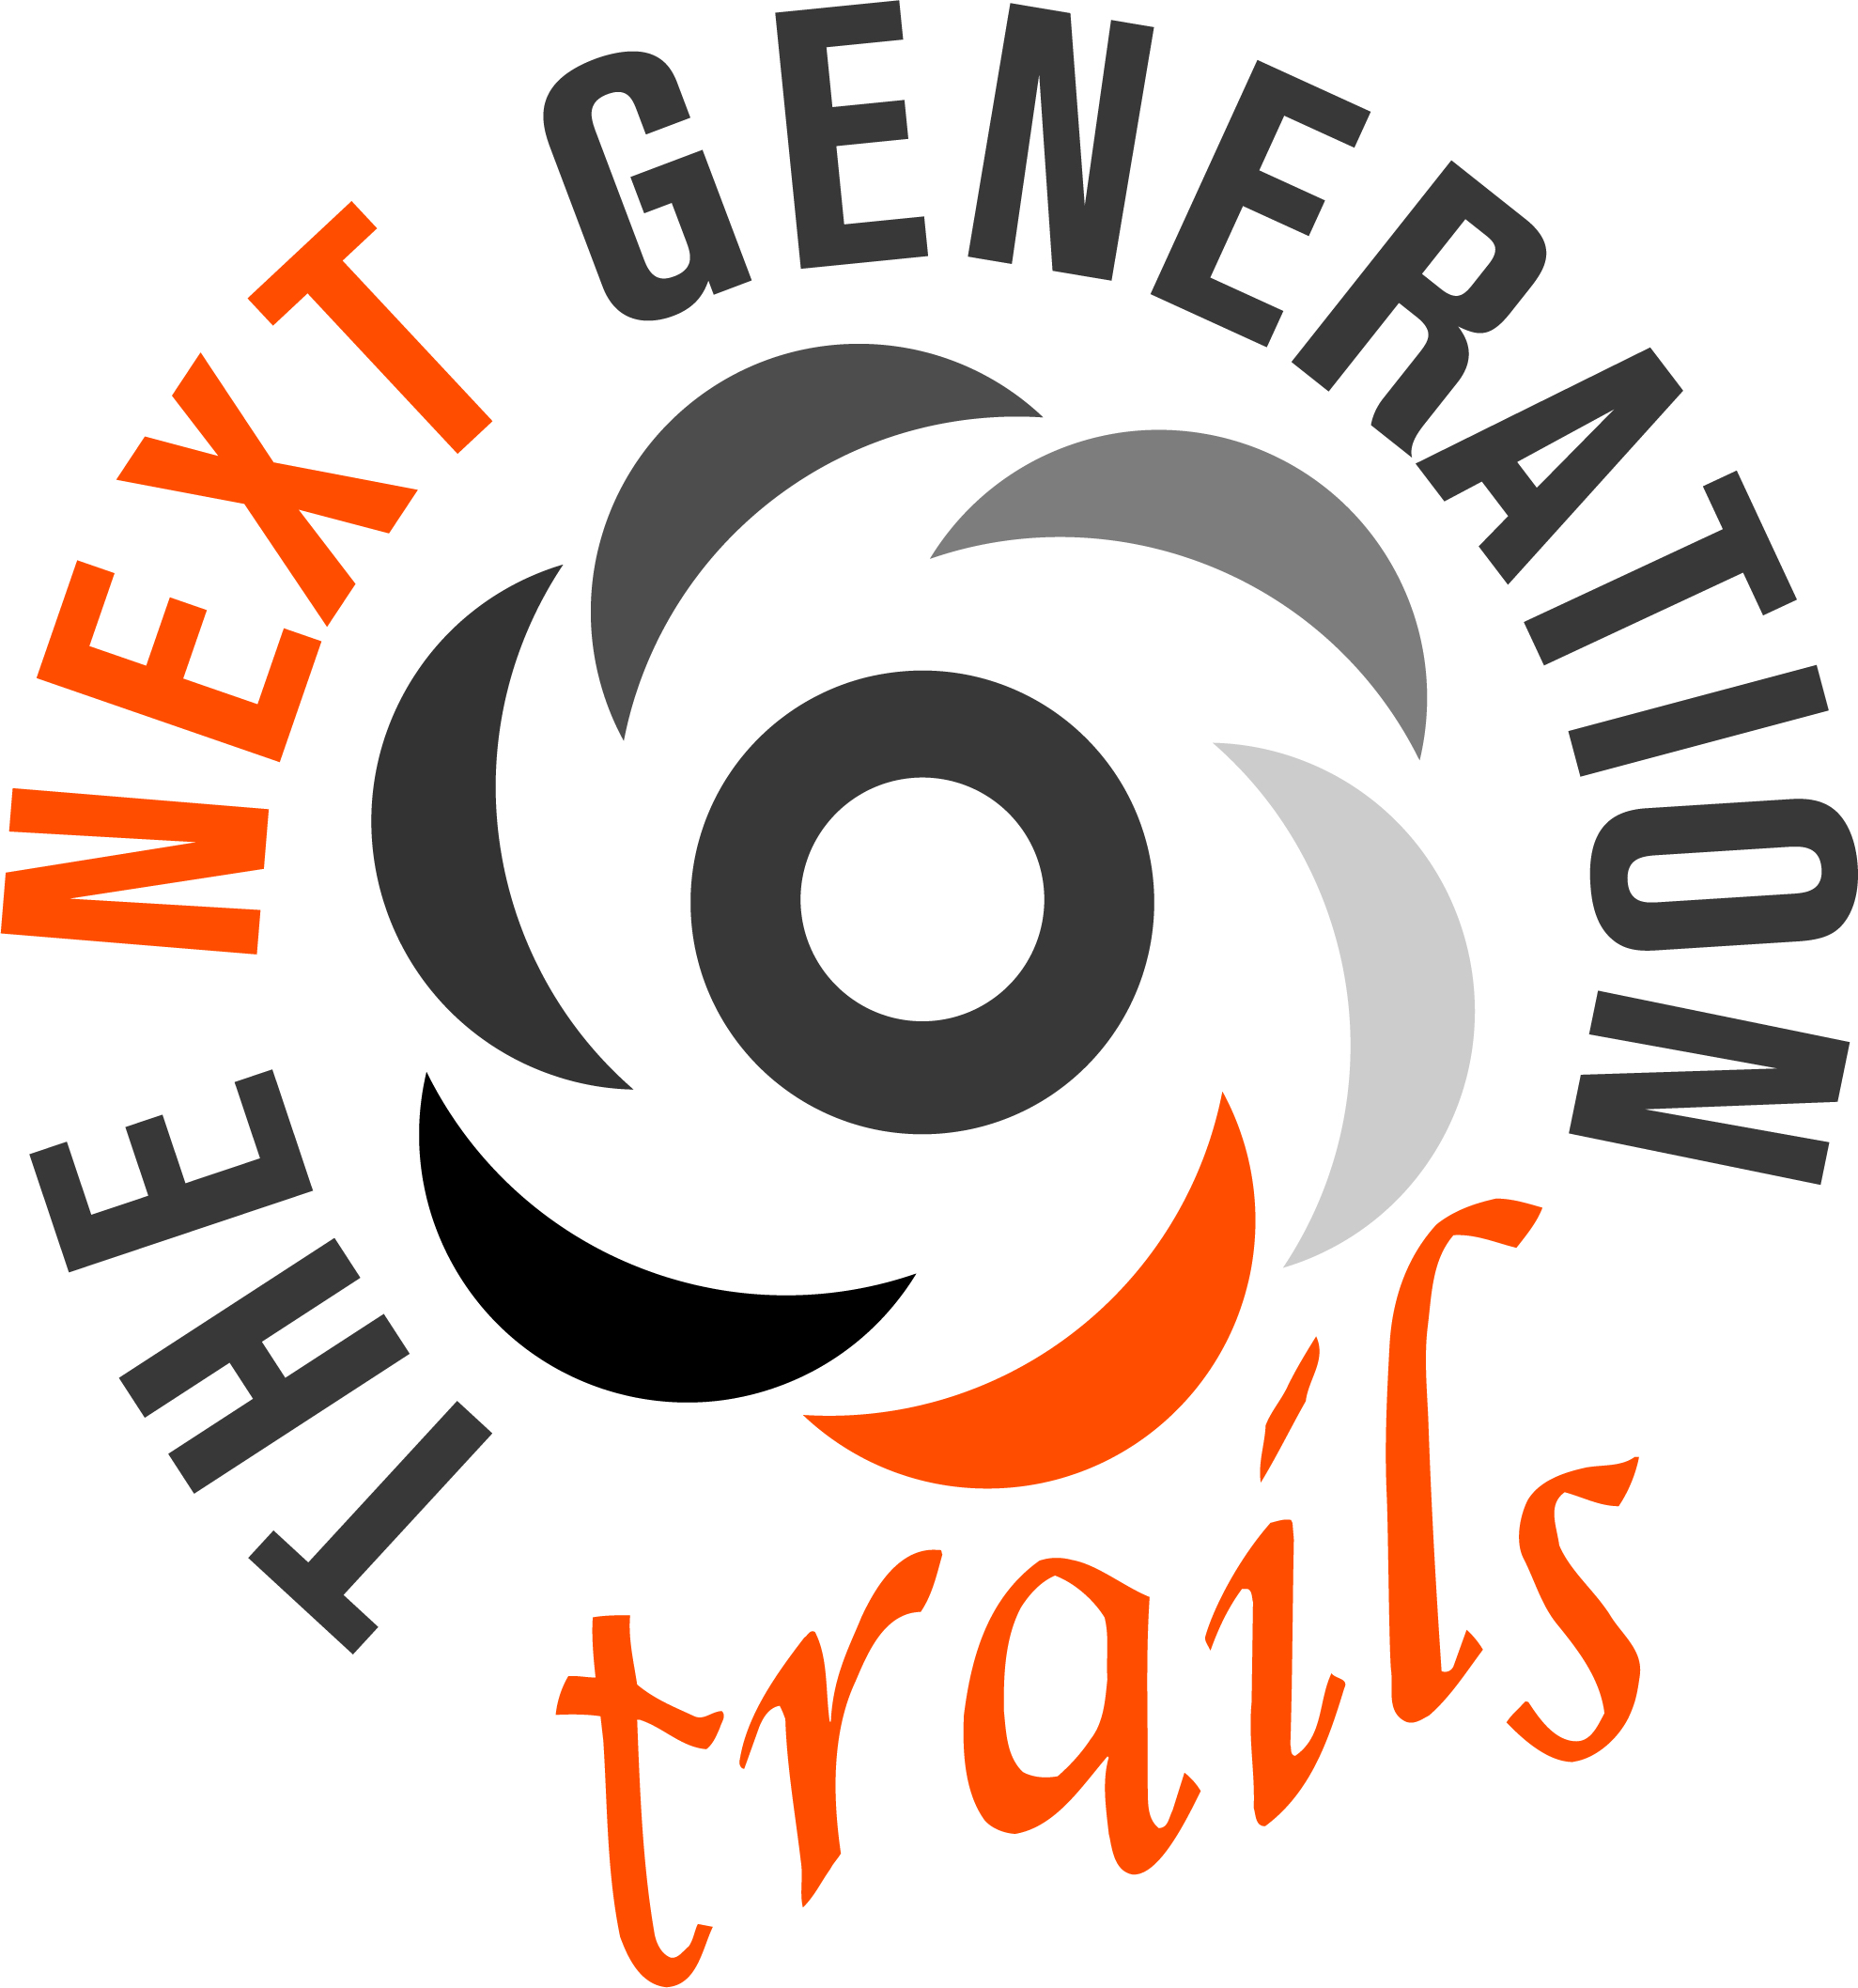 trails next logo